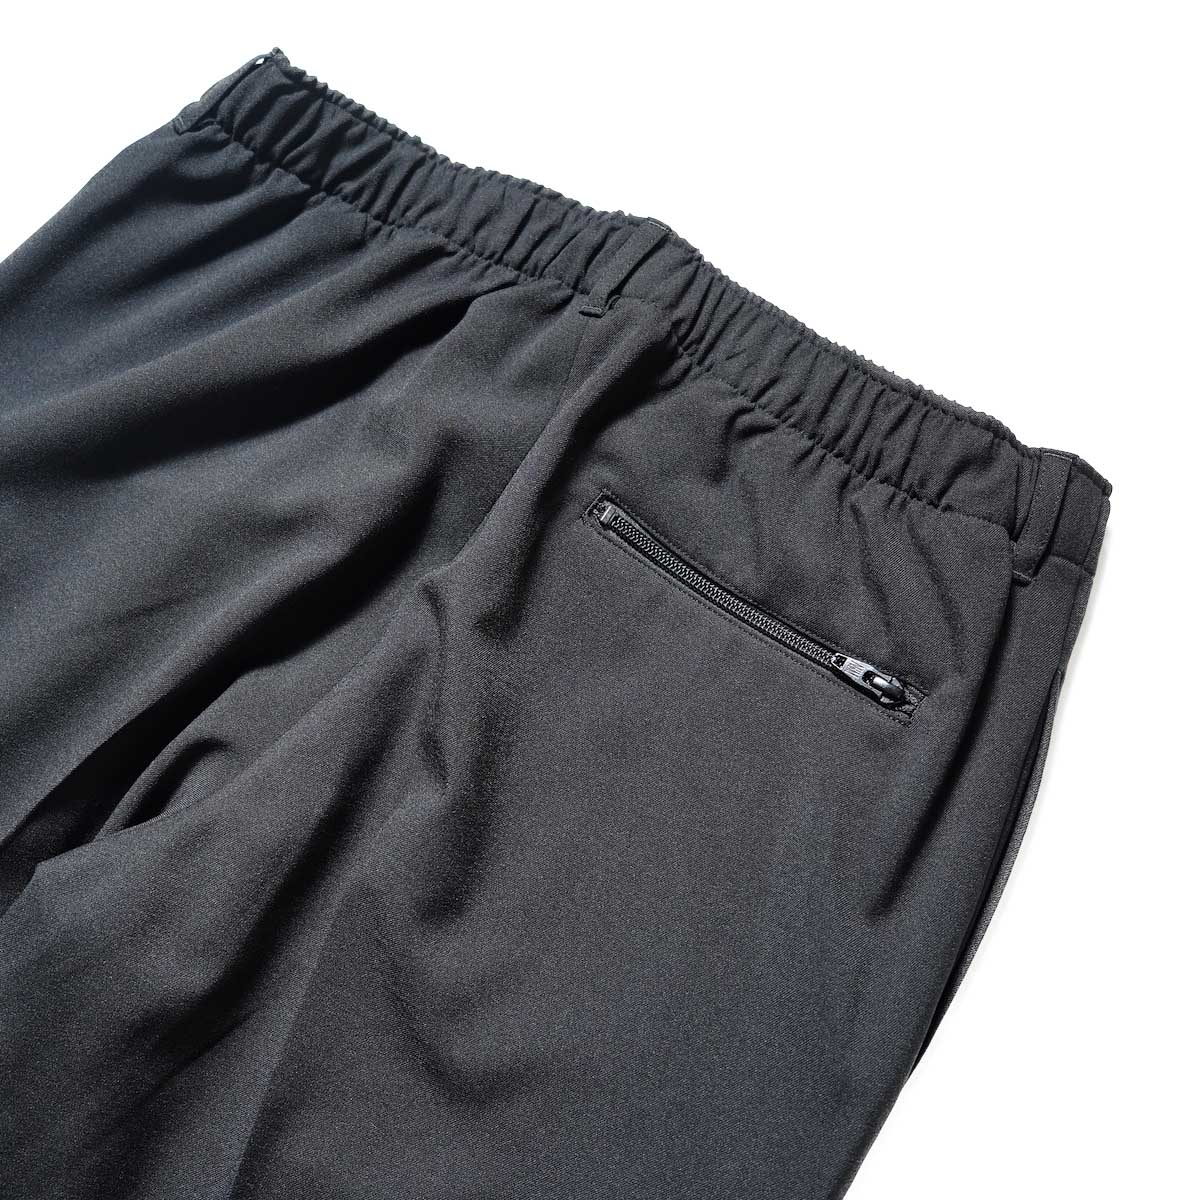 N.HOOLYWOOD / 2212-CP07-008 peg Tapered Easy Pants (Black)ヒップポケット